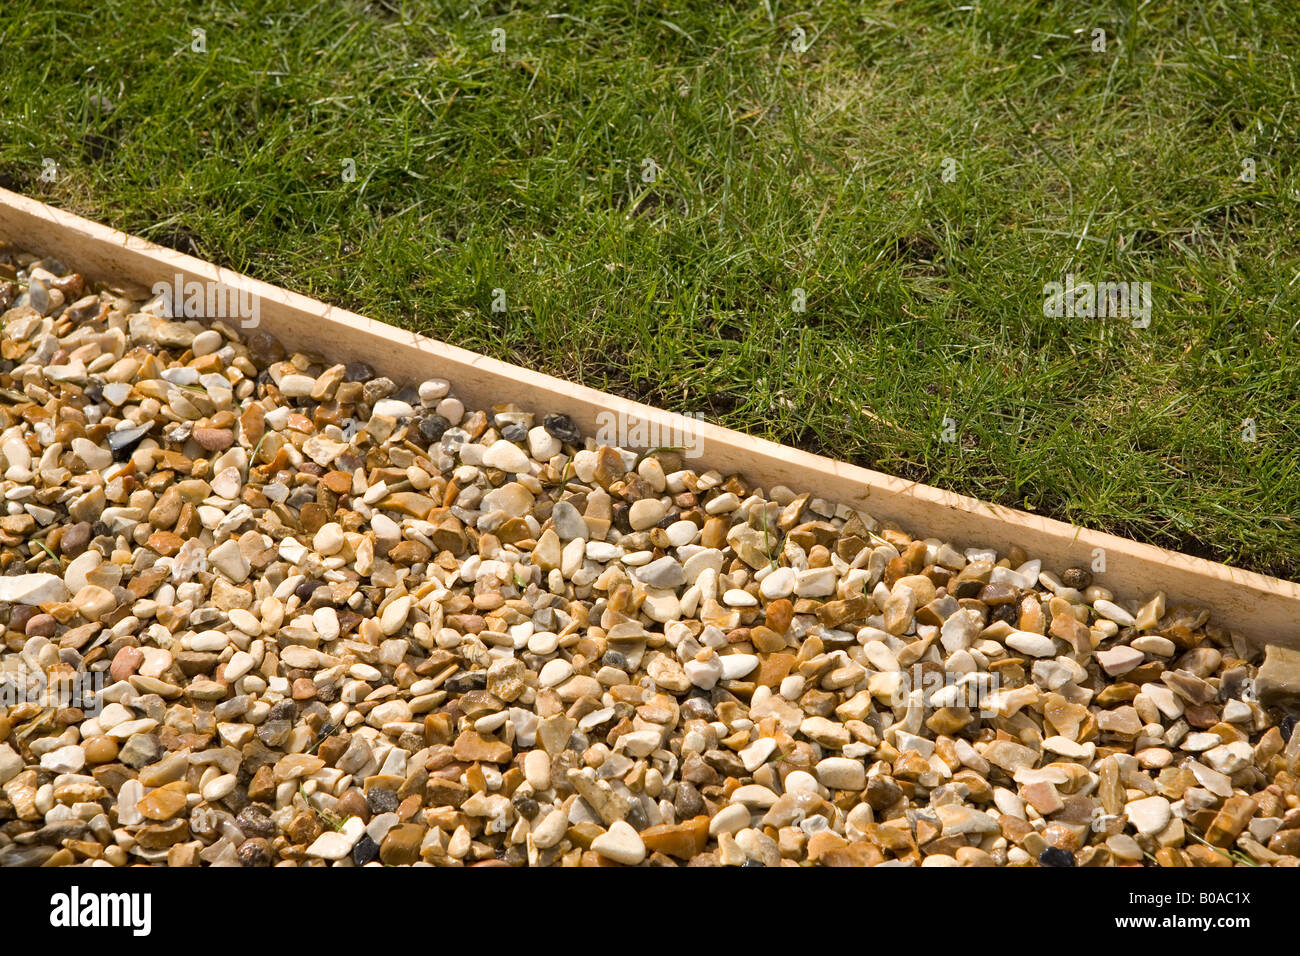 Gravel path with wooden lawn edging stock photo 17439350 for Wooden garden edging